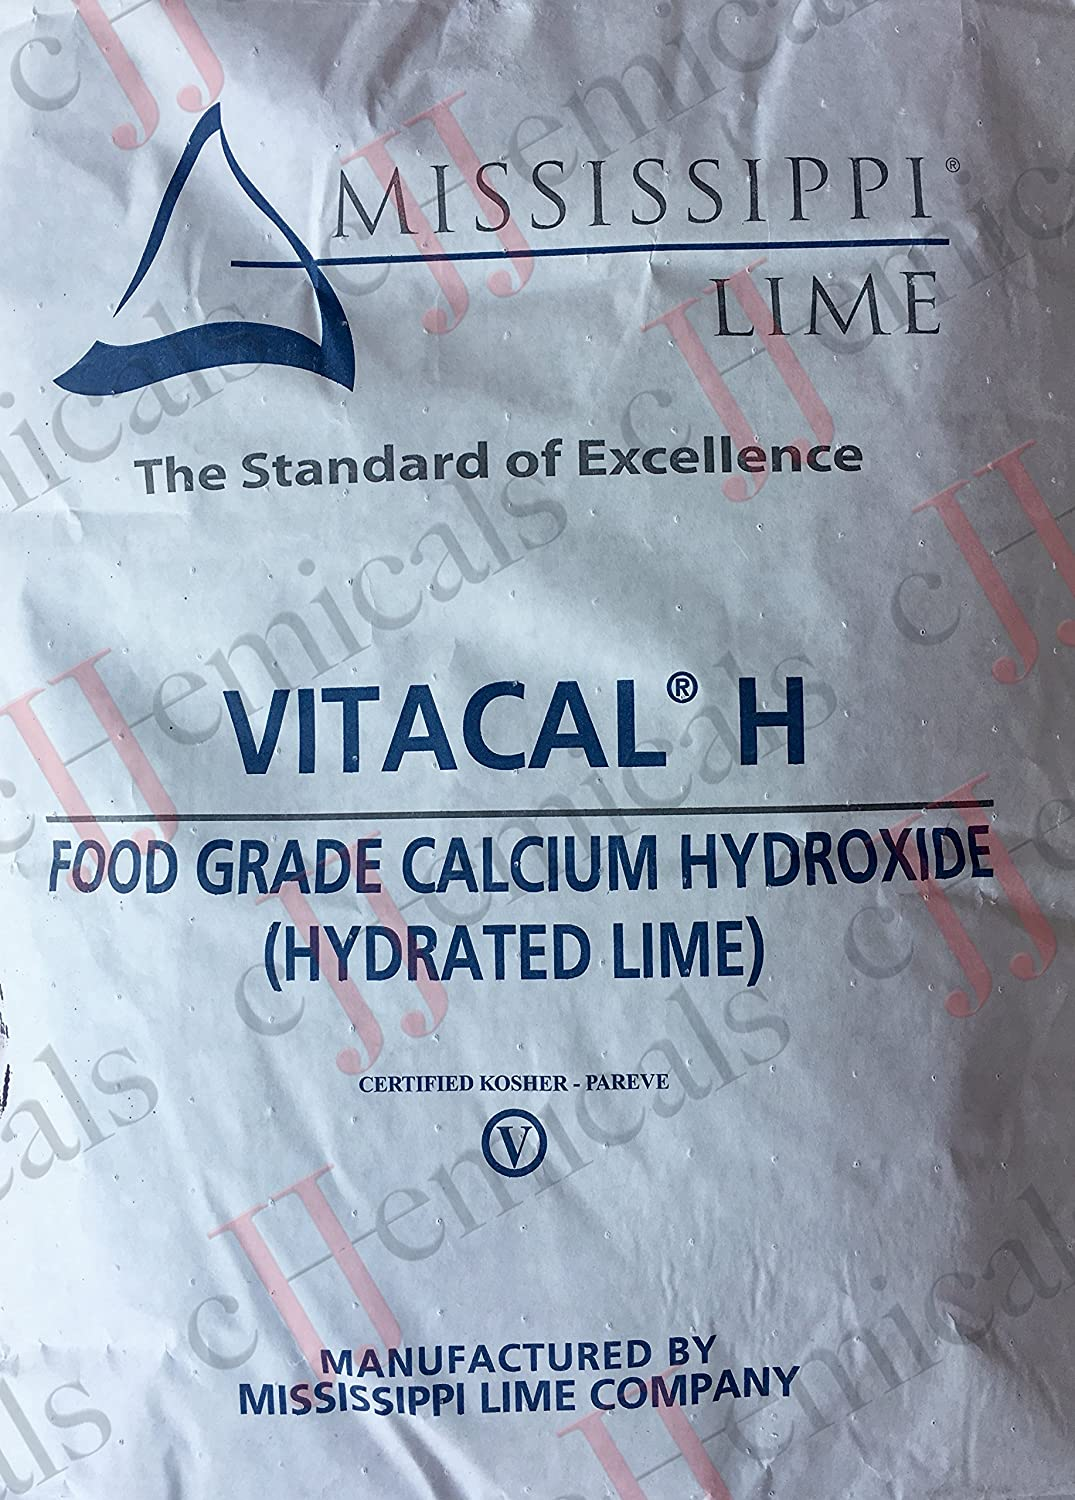 Calcium Hydroxide FOOD GRADE Minimum 99% purity! 50LB BAG